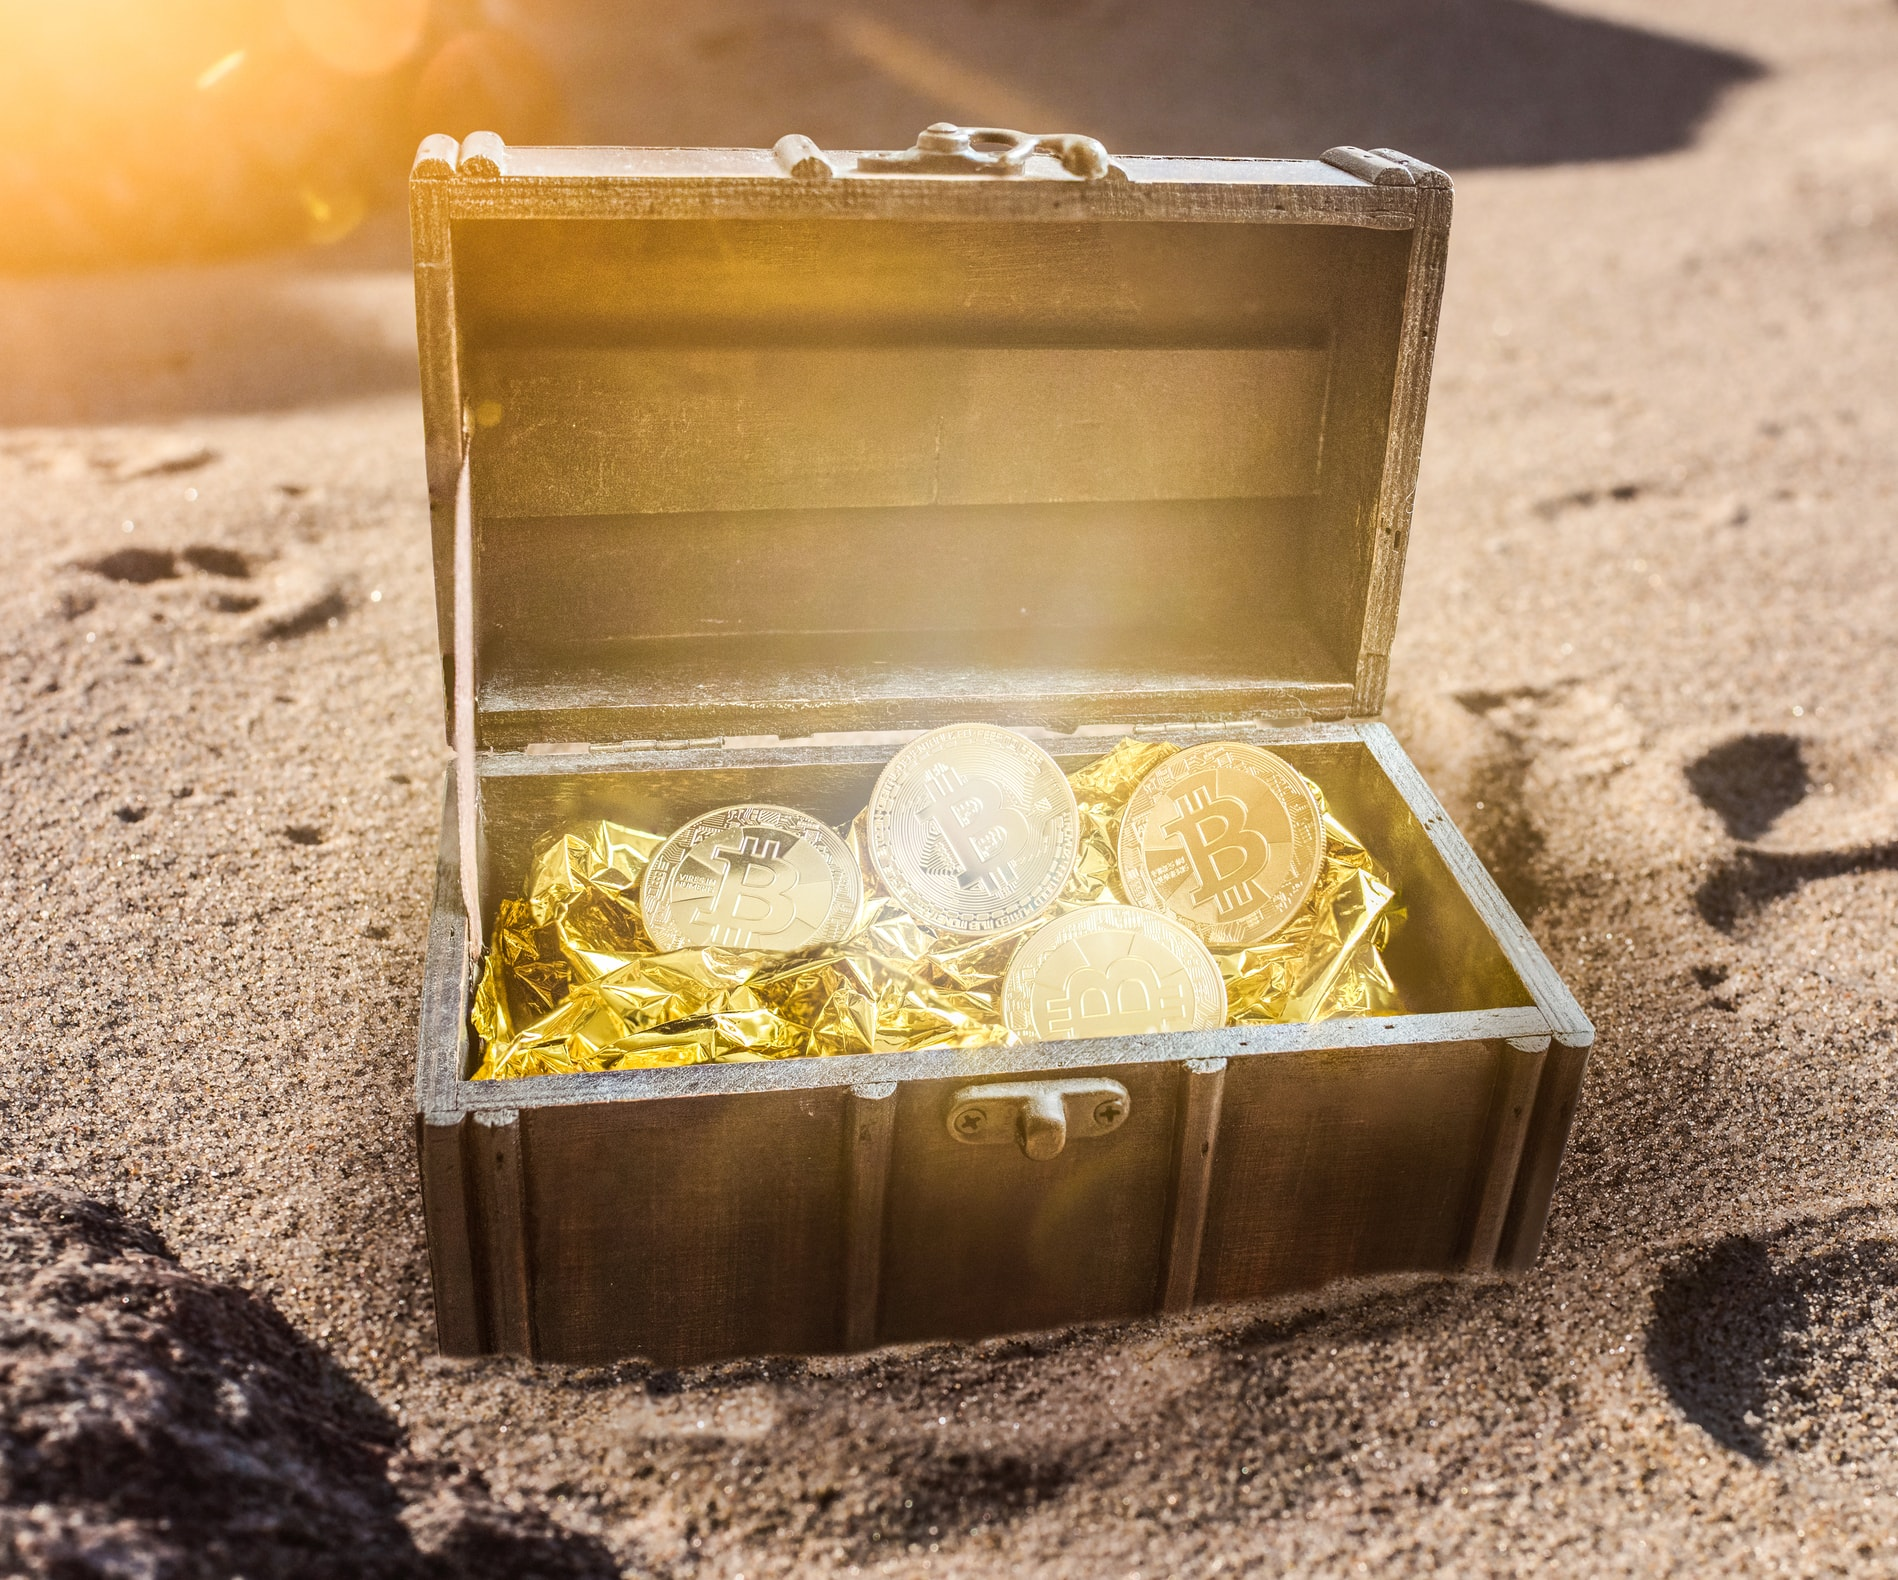 Satoshi's Treasure, the $1 million bitcoin puzzle